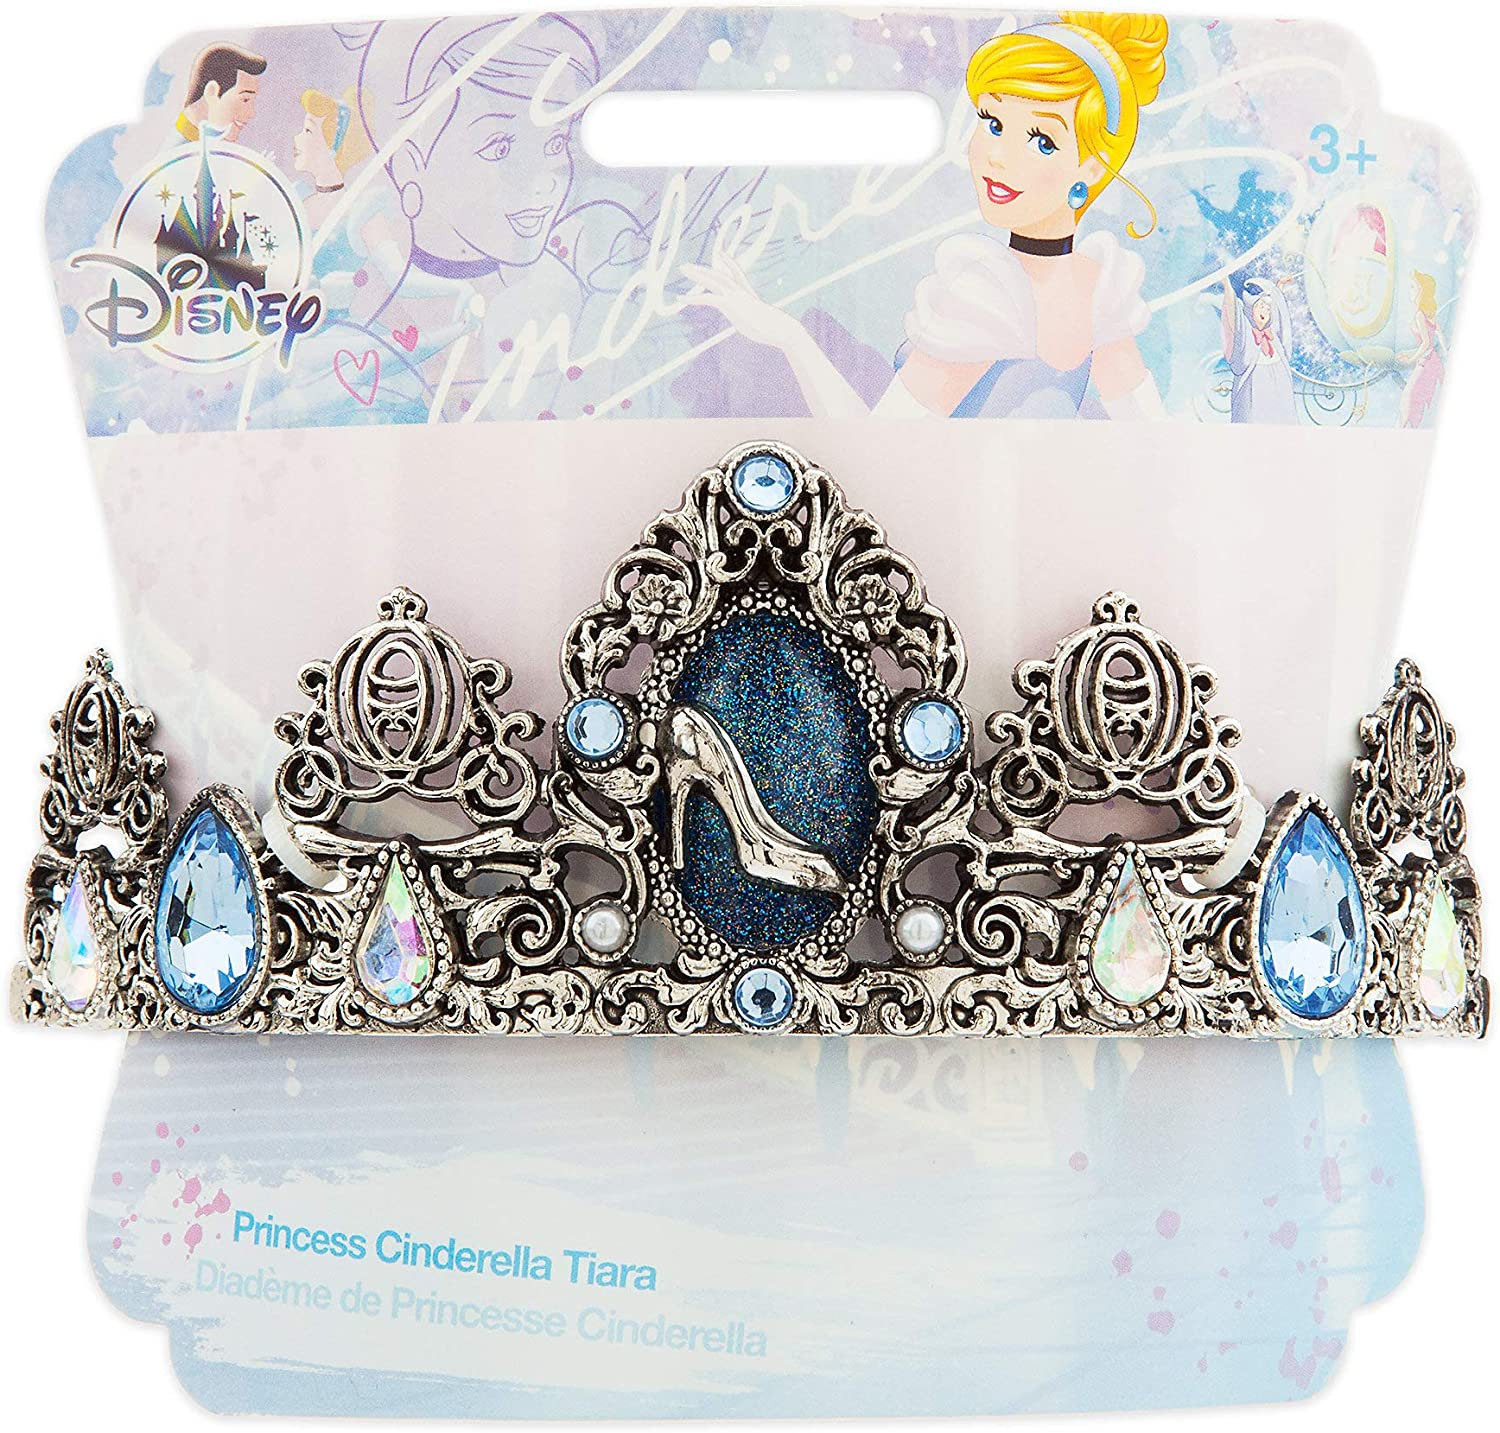 Girl PRINCESS CINDERELLA TIARA Headband Headpiece Disney Stor Child Silver Crown